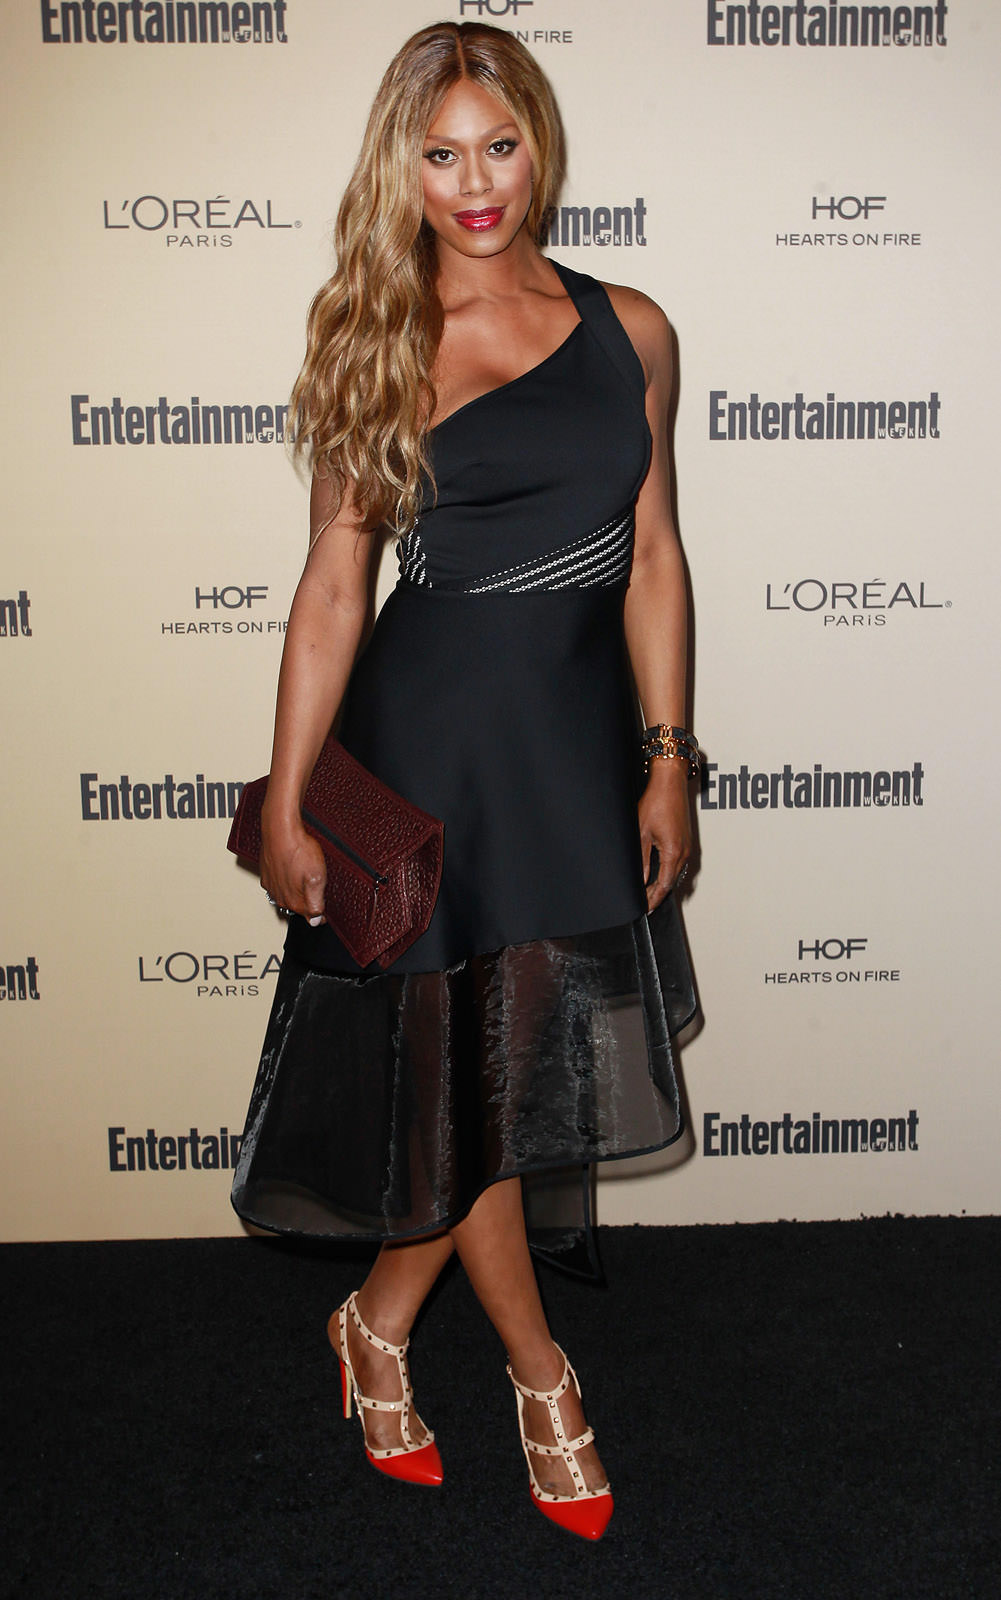 Laverne Cox Photo Gallery